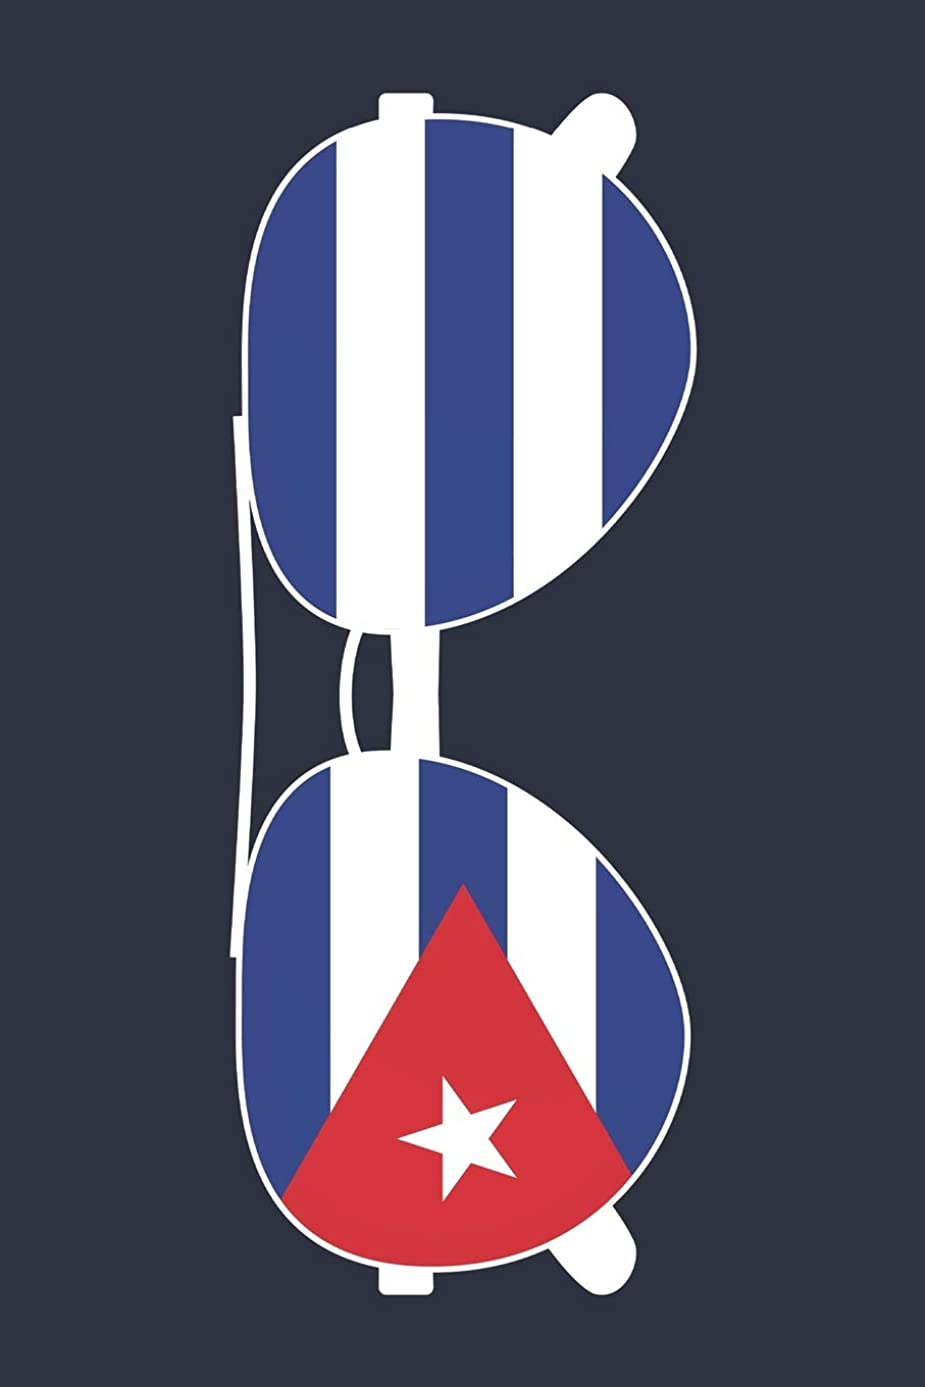 Cuba Notebook 'Cuba Sunglasses' - Holiday Planner - Cuban Flag Diary - Cuba Travel Journal: Medium College-Ruled Journey Diary, 110 page, Lined, 6x9 (15.2 x 22.9 cm)